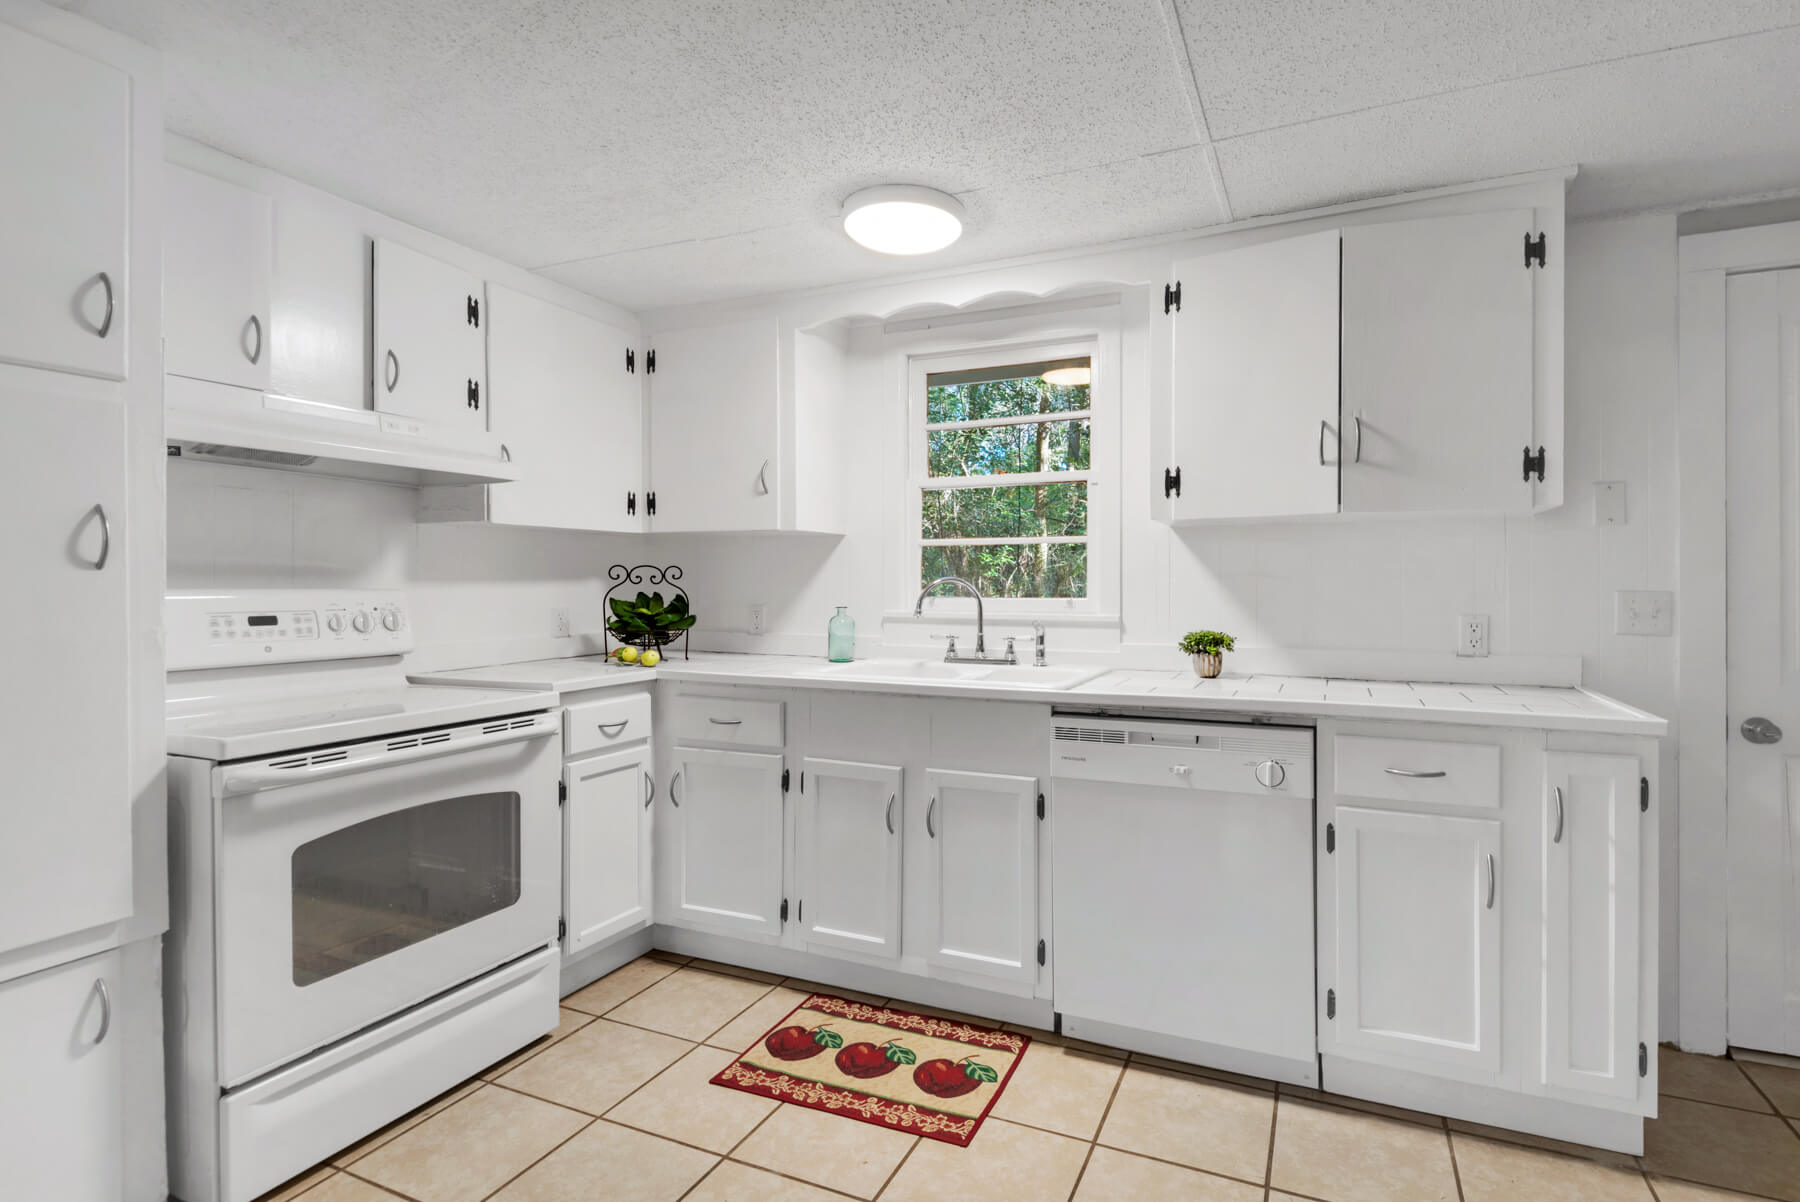 Kitchen Cabinets Blackmarsh Road 7390 New Era Road For Sale In Fairhope 74 900 Move In